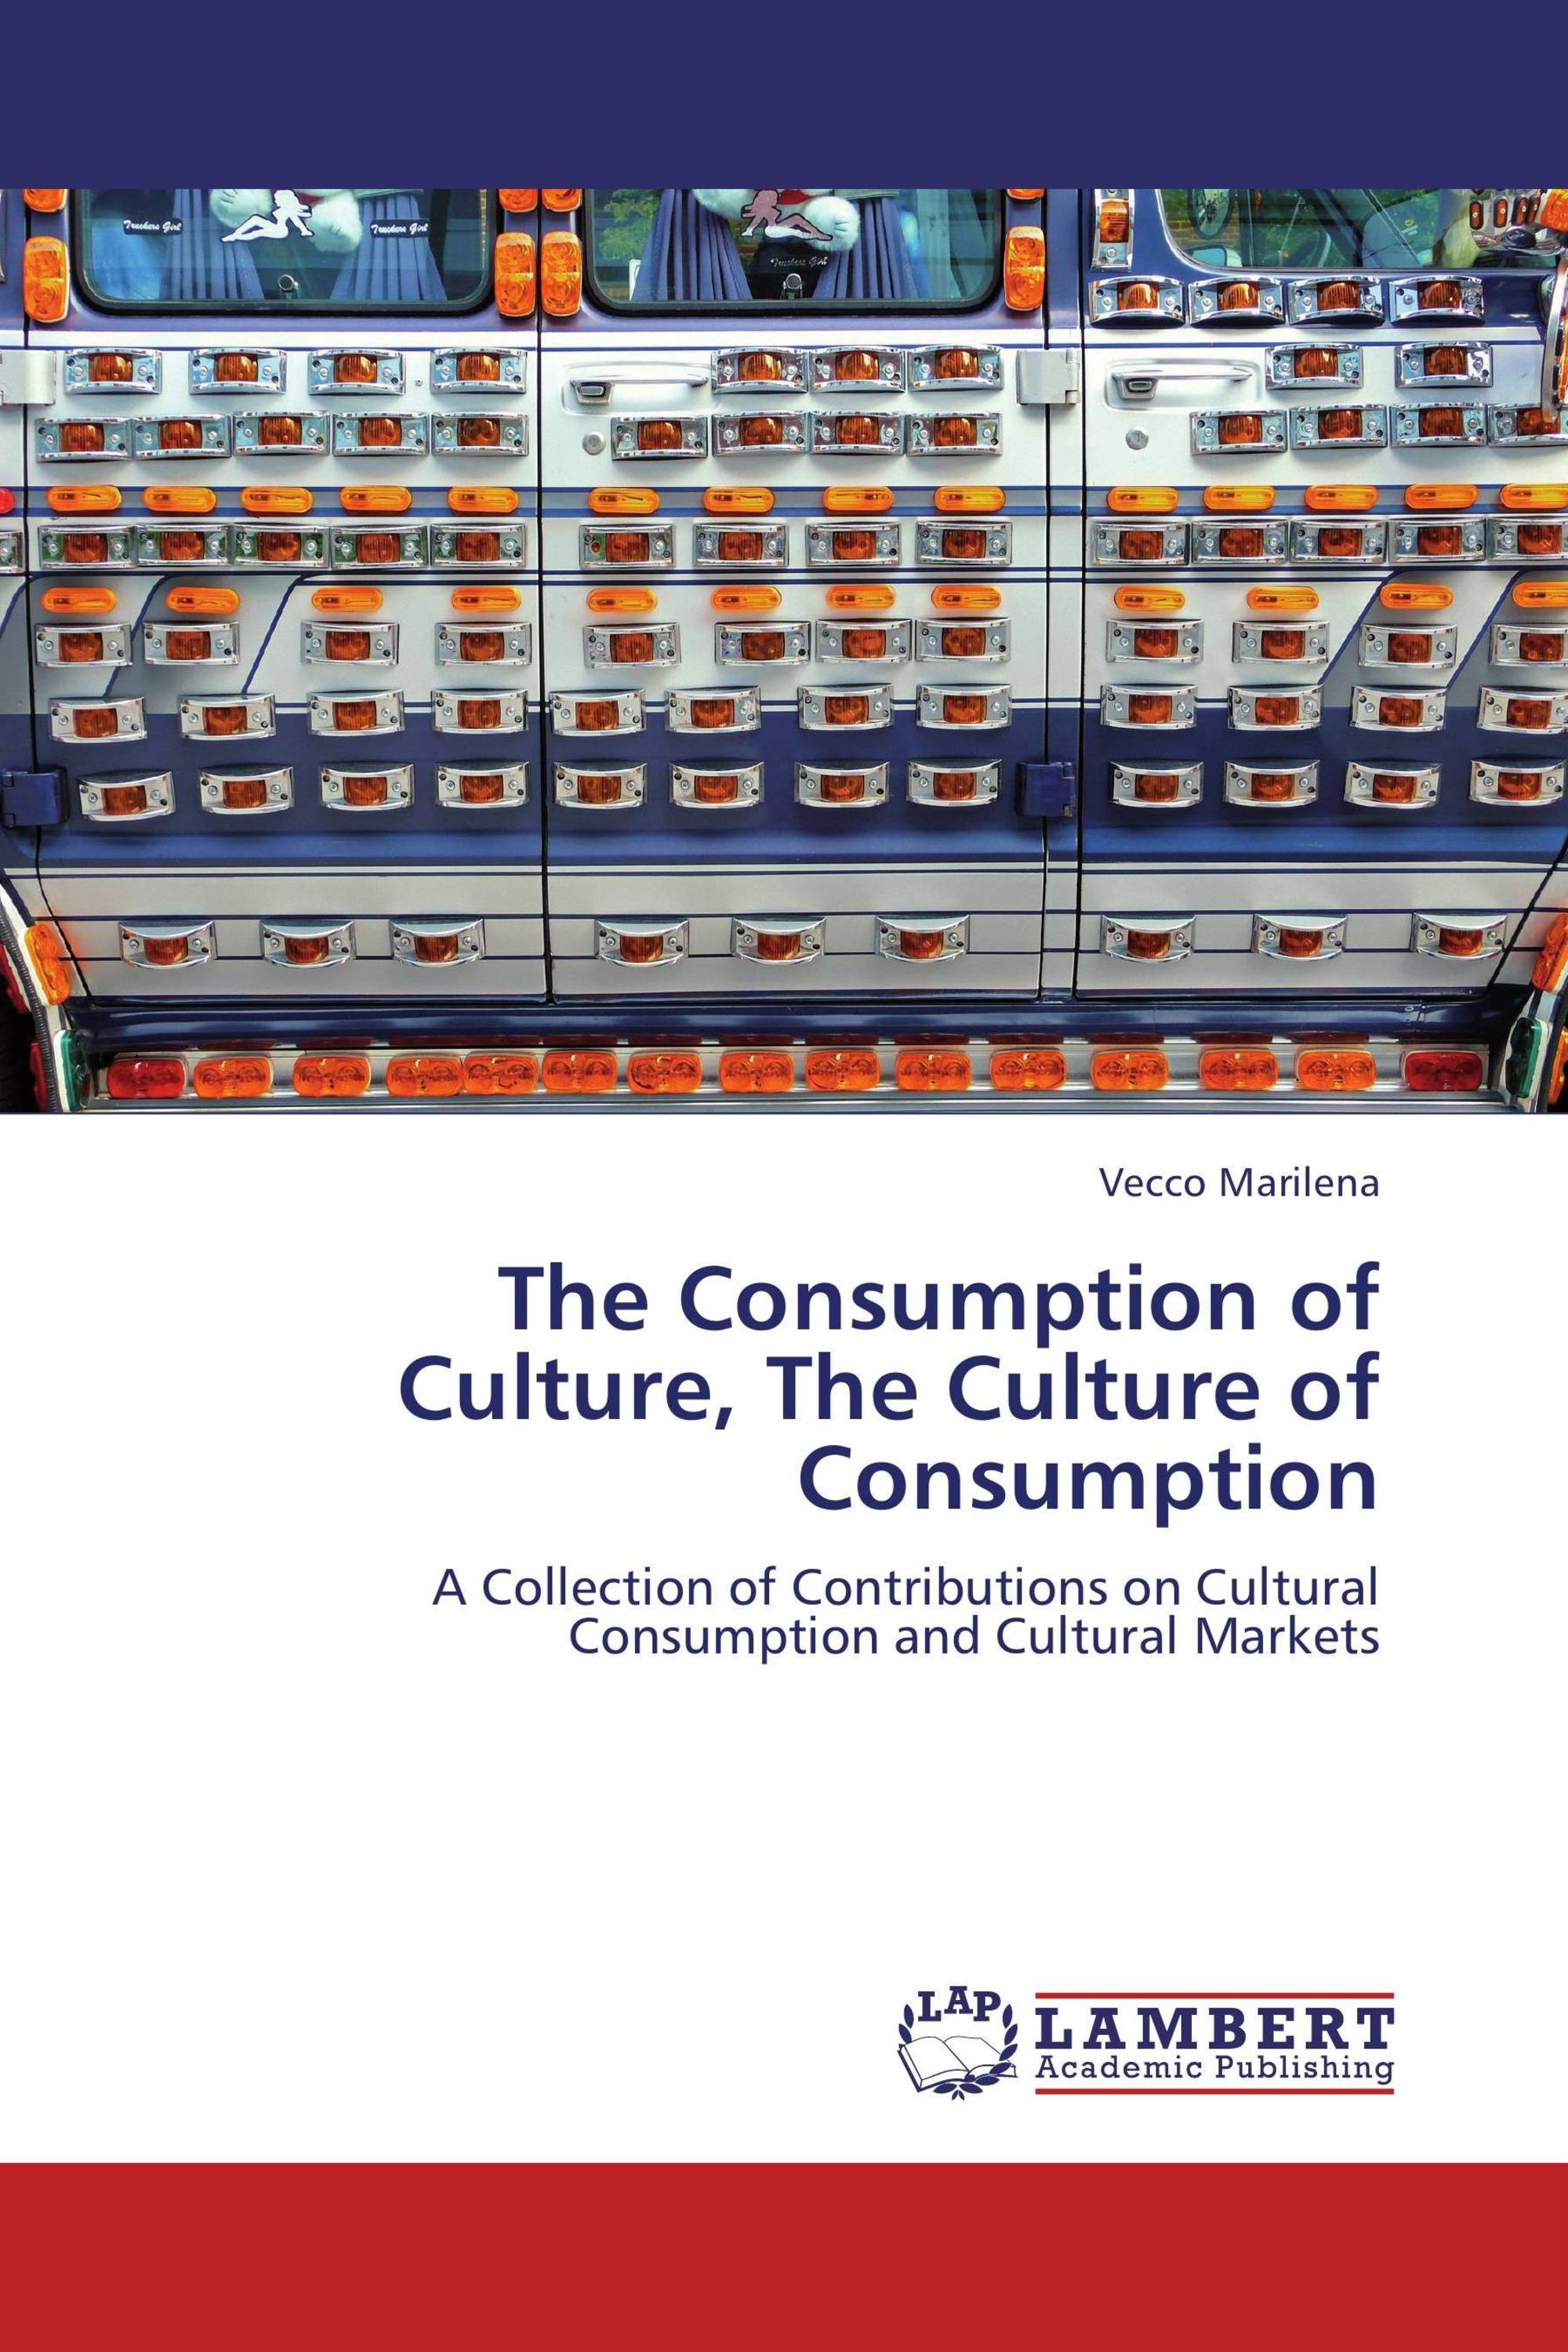 The Consumption of Culture, The Culture of Consumption